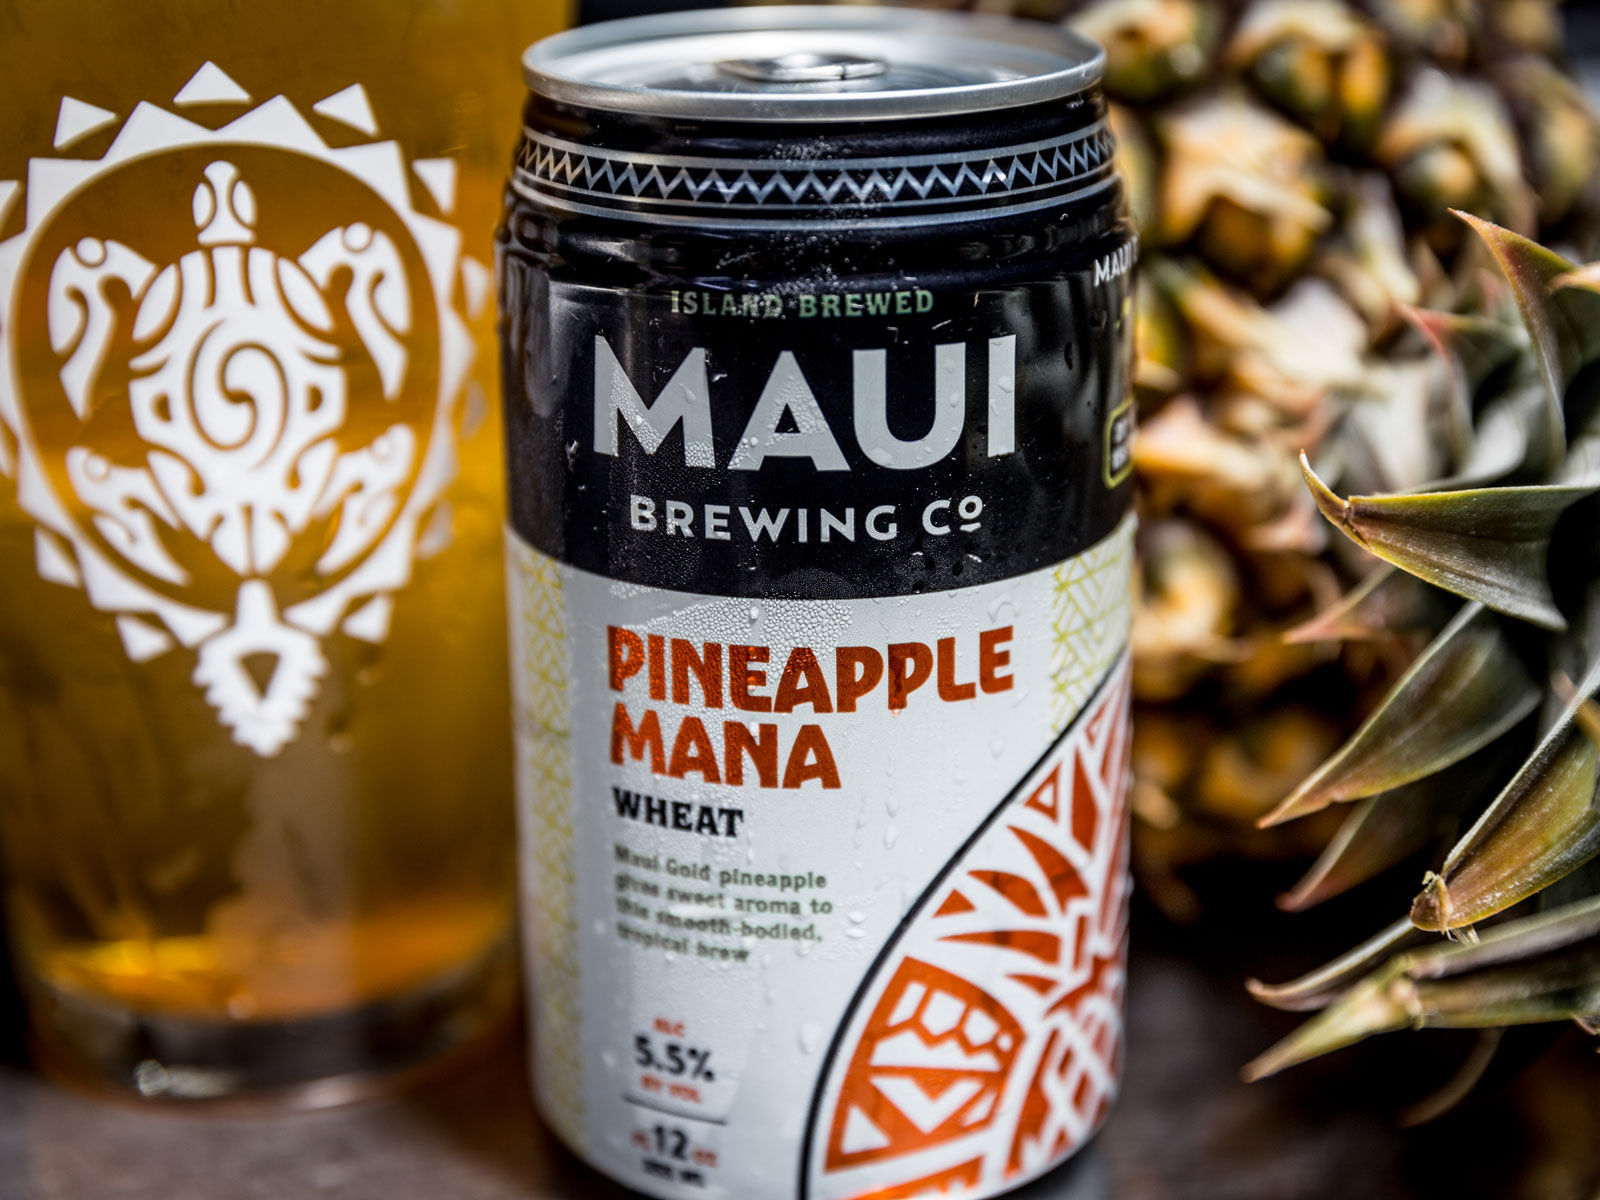 Maui Brewing Co. Pineapple Mana